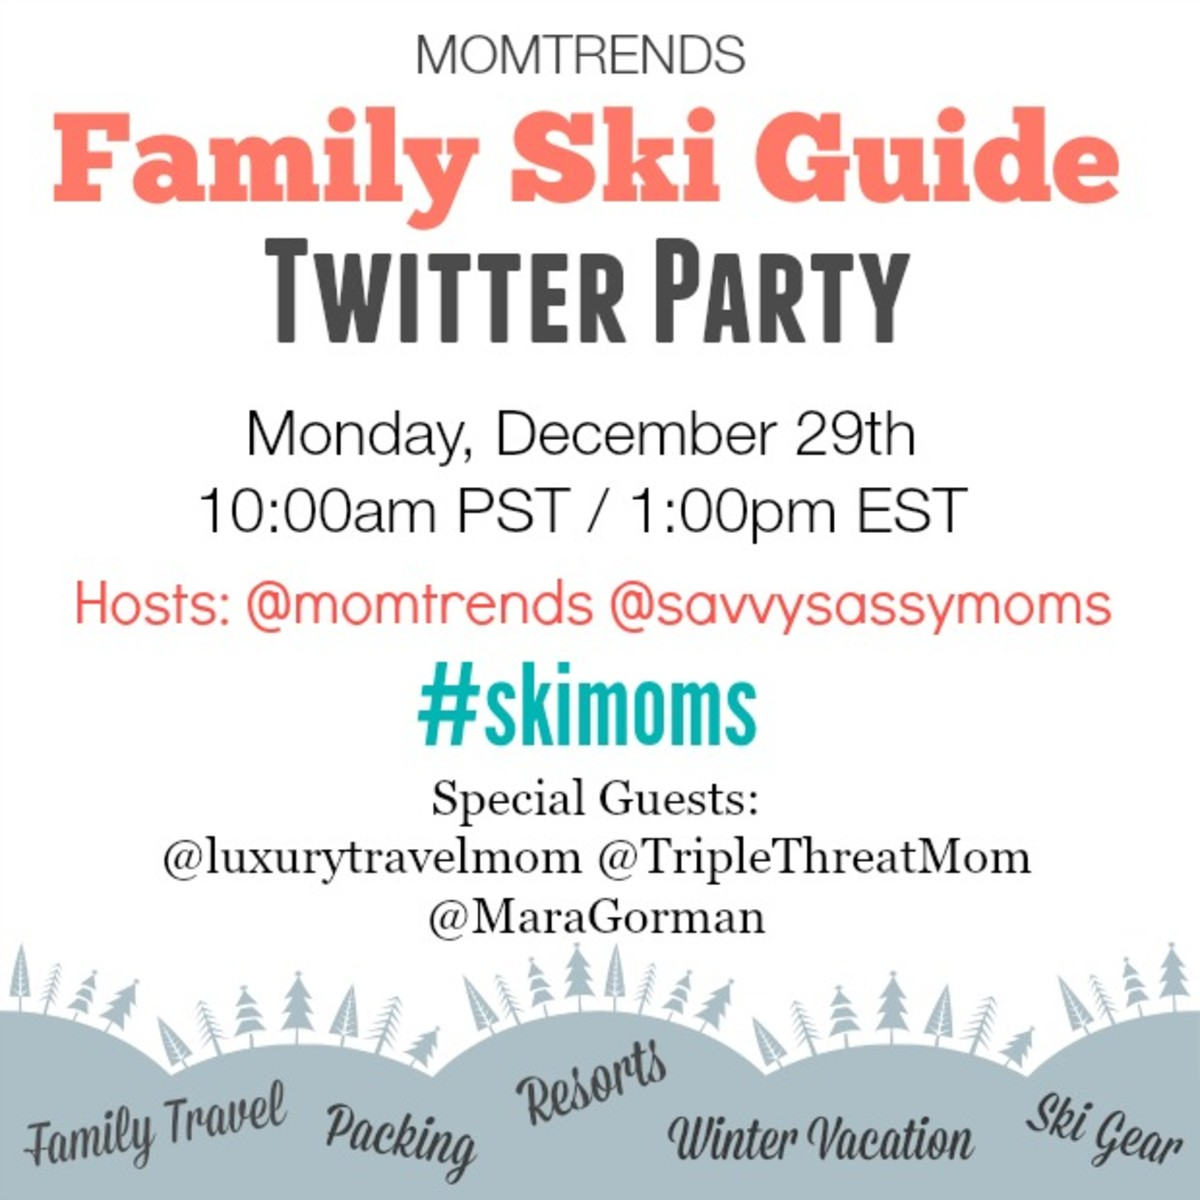 MomTrends Ski Guide Twitter Party